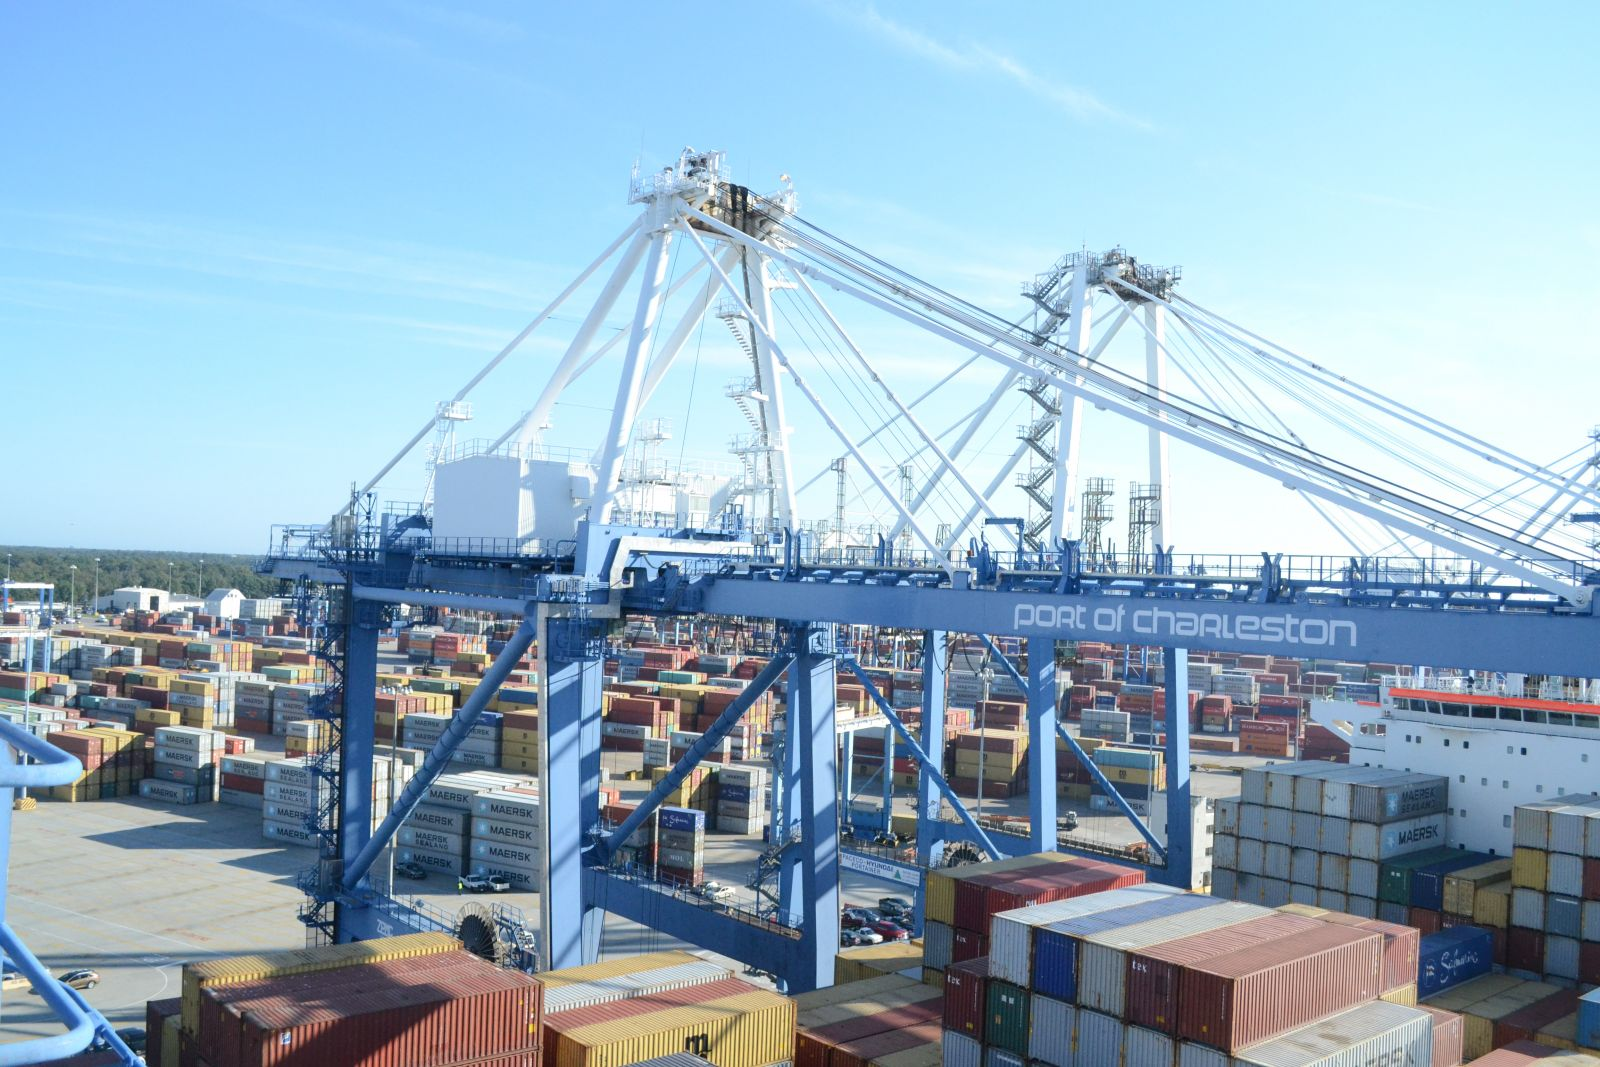 The Port of Charleston reported a record 105,000 pier containers handled in January. (Photo/File)